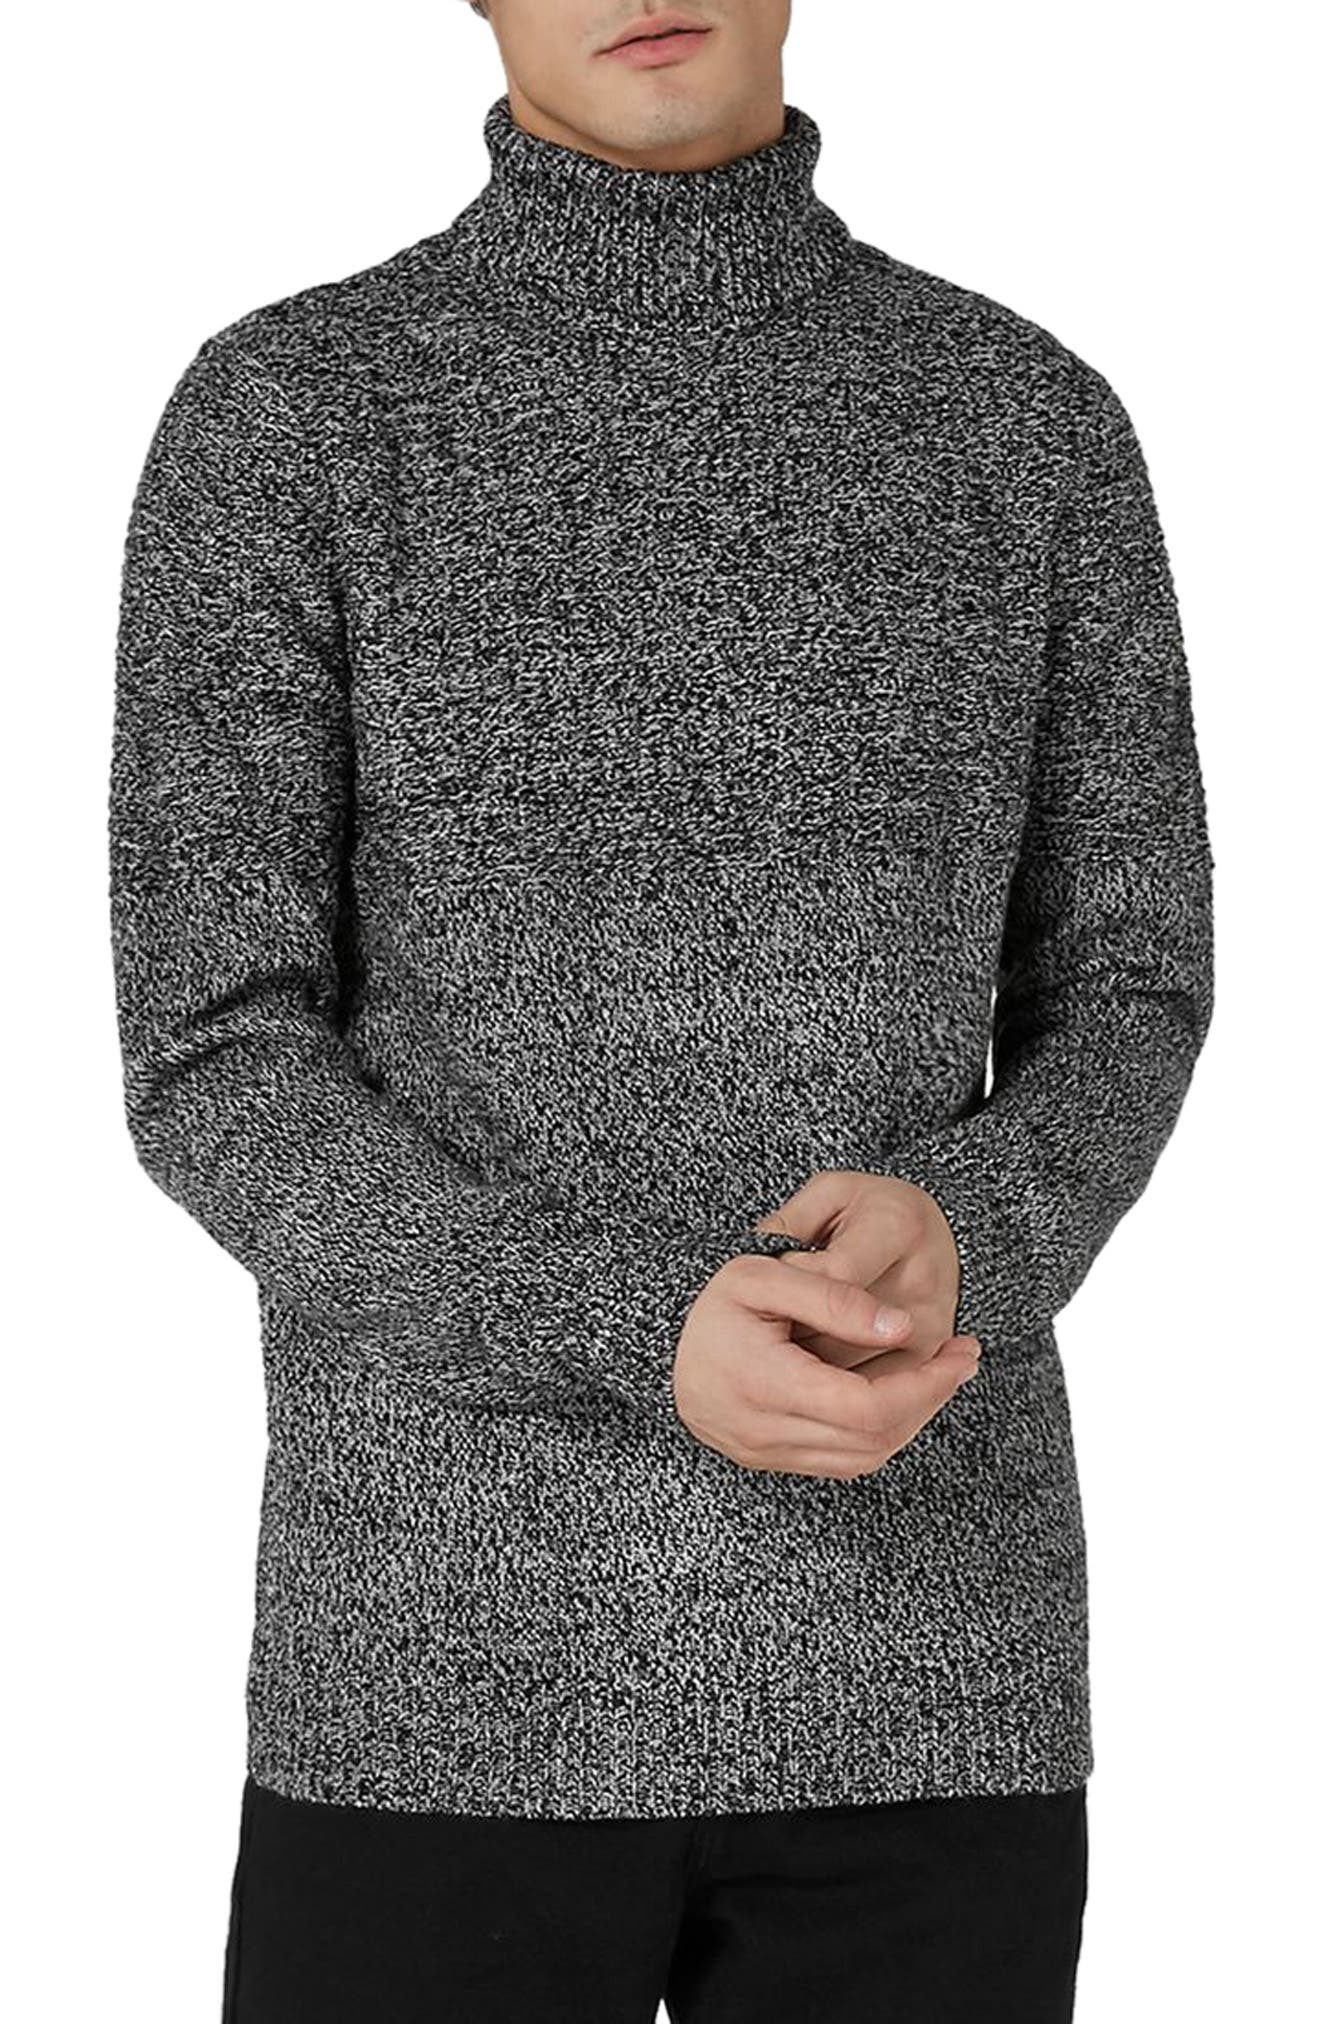 Main Image - Topman Twist Roll Neck Sweater